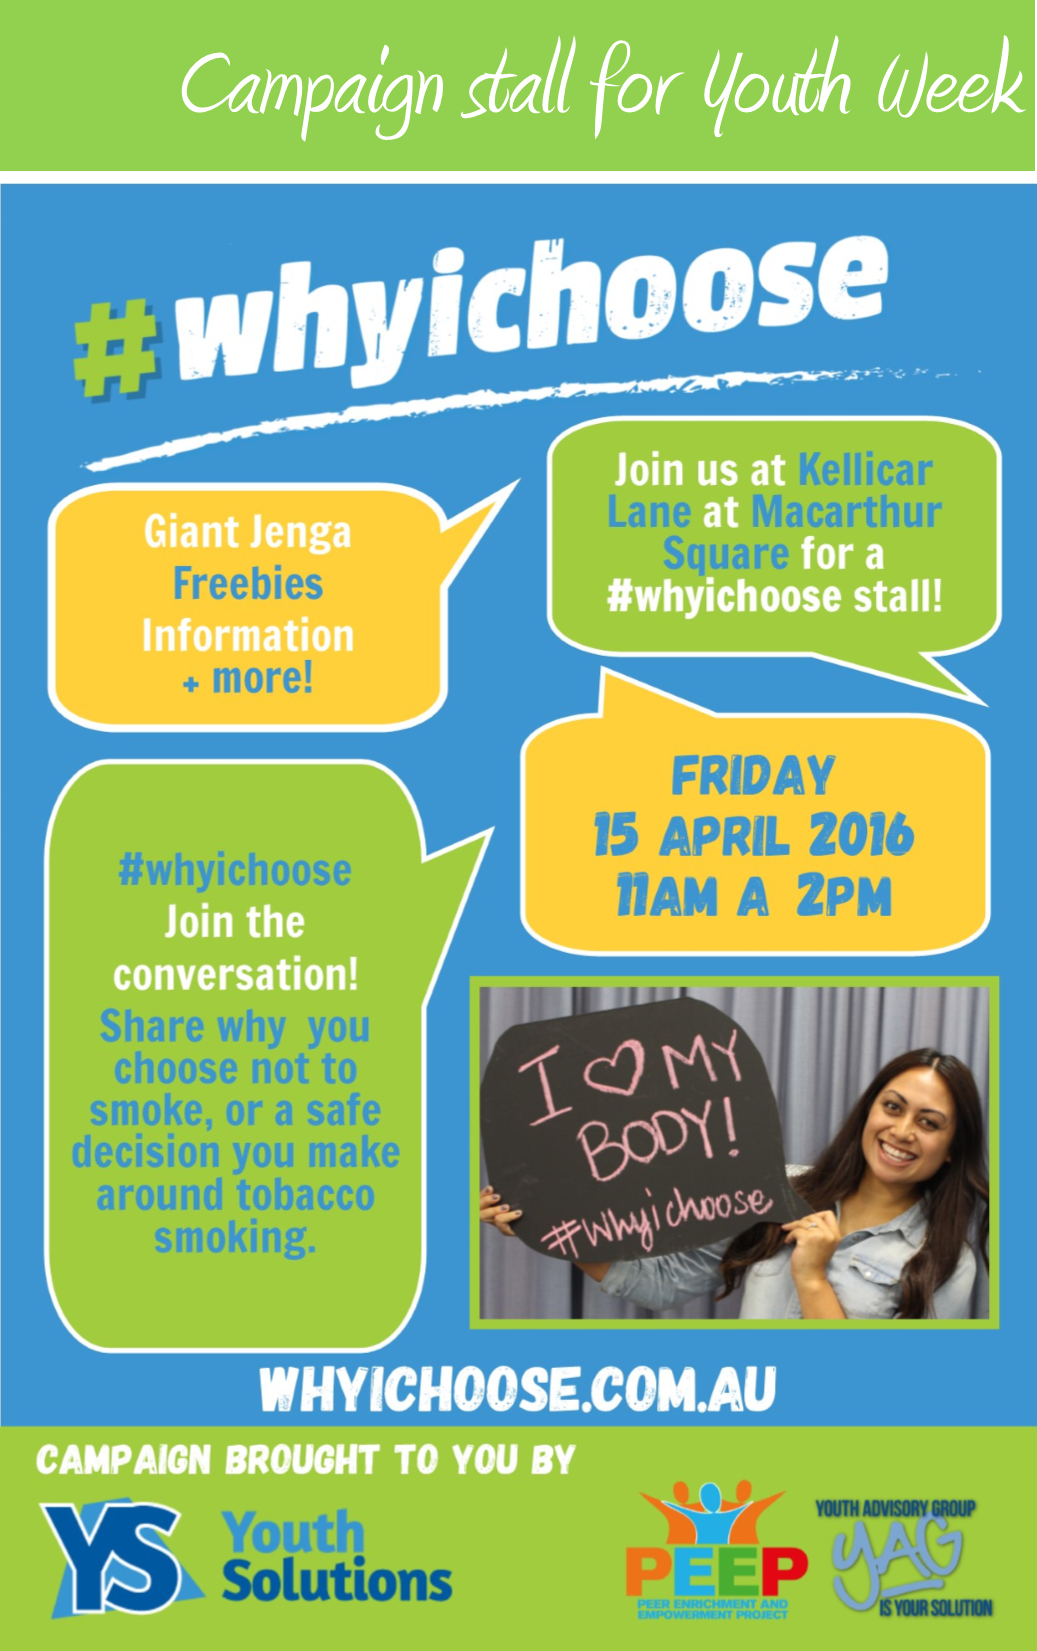 Youth Solutions to host #whyichoose stall at Macarthur Square for Youth Week.